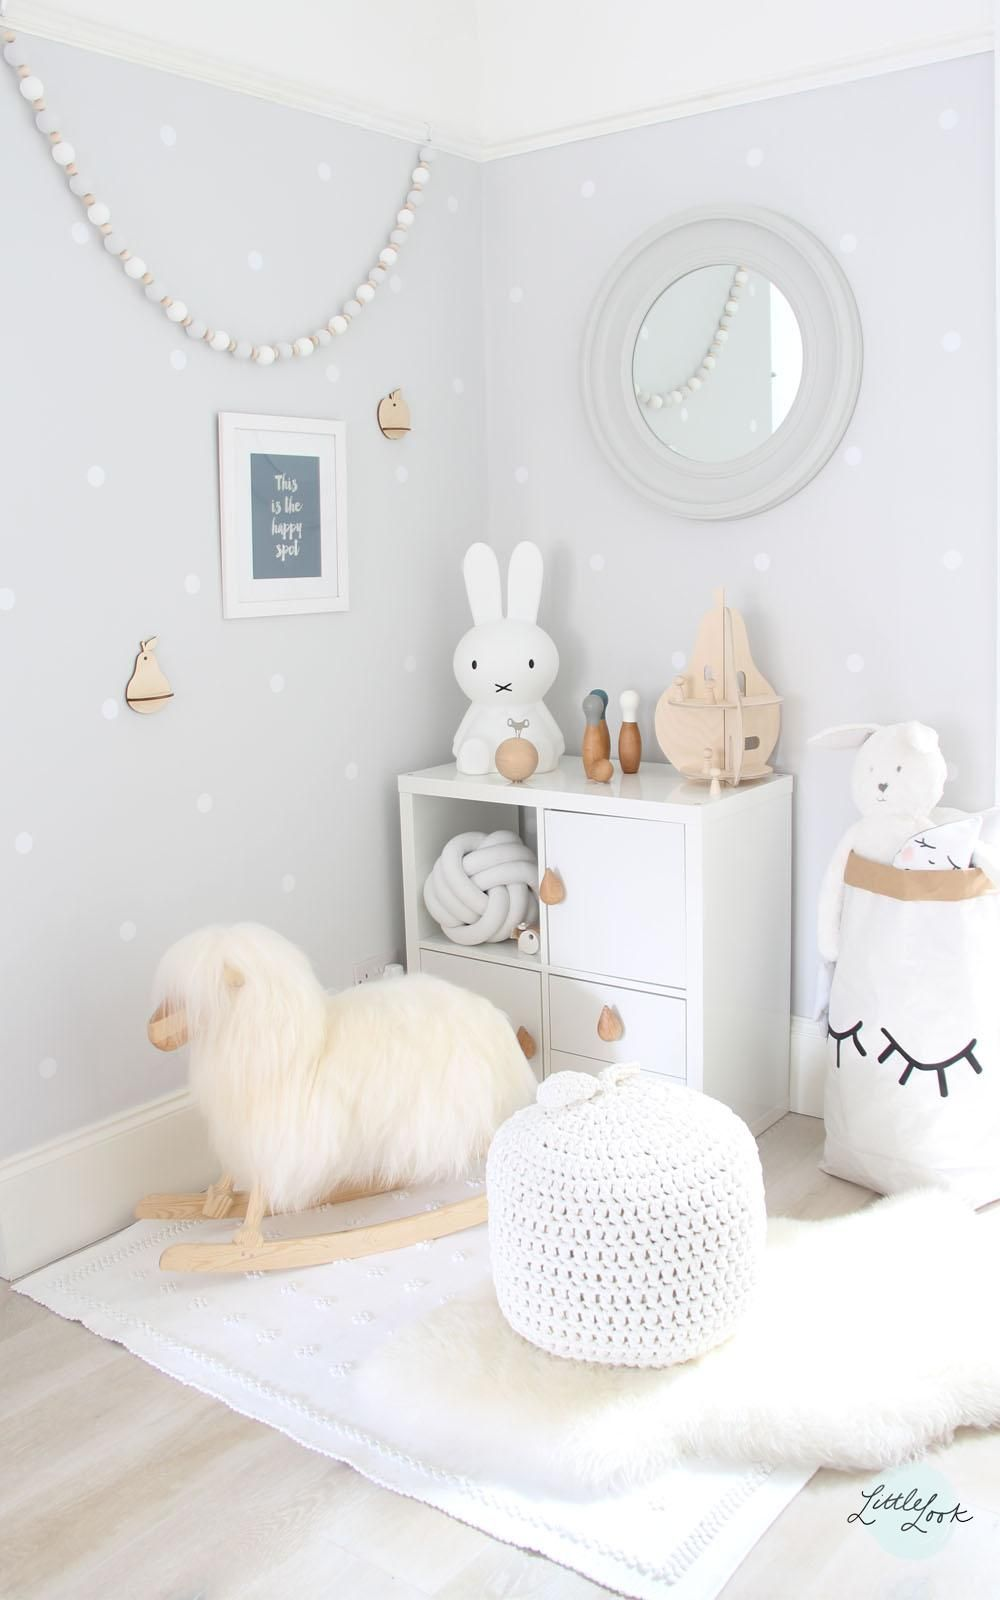 Decoration Chambre Bebe Idee Pin By Laure Delcambe On Chambre Bébé Baby Room Decor Kids Room